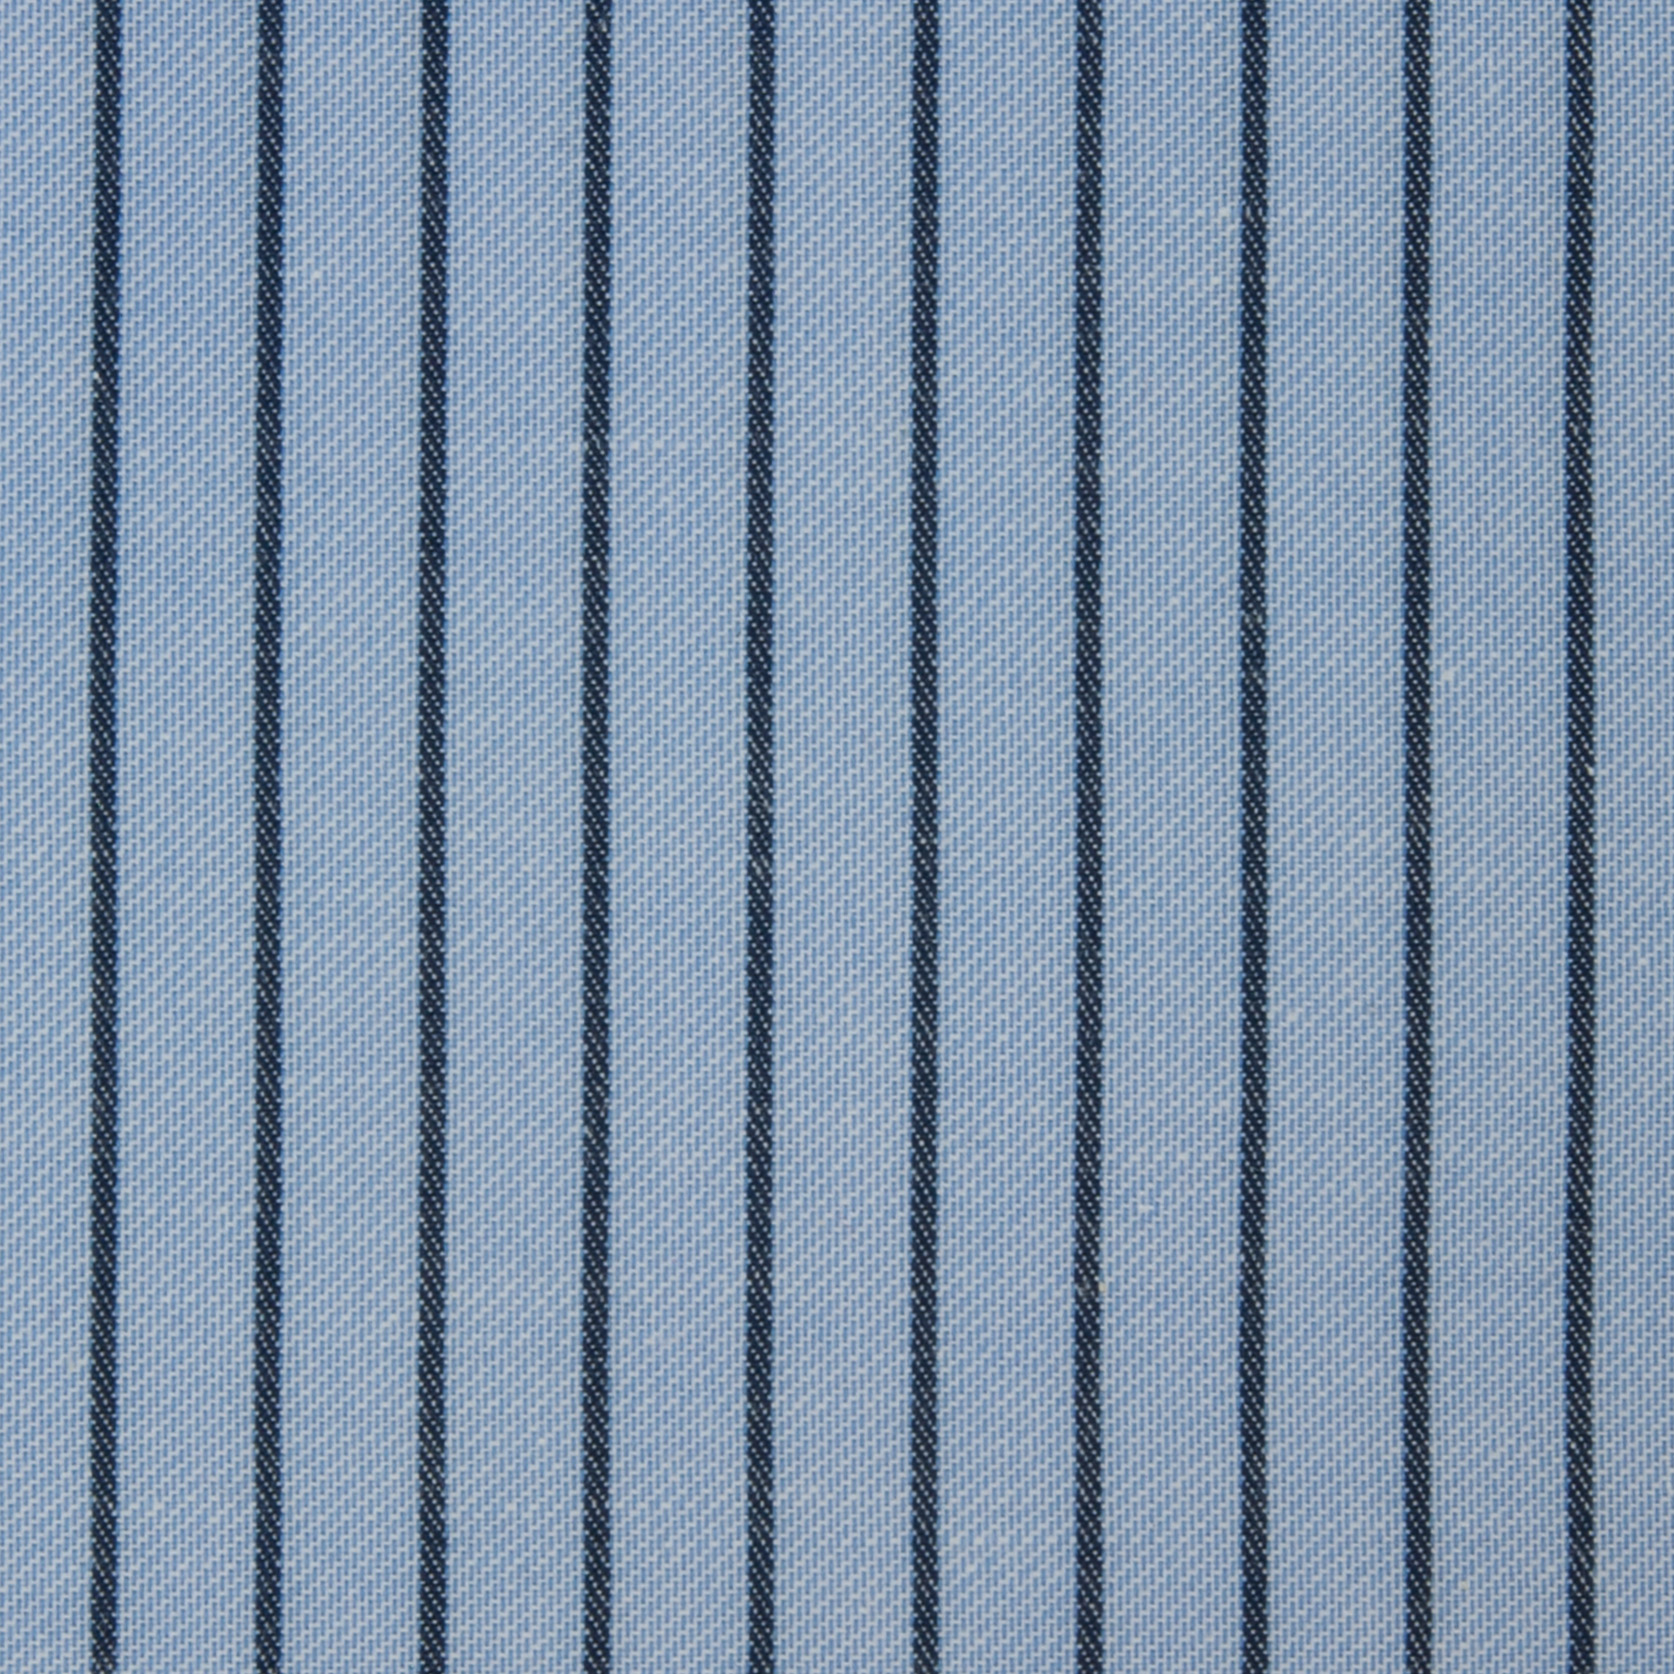 Buy tailor made shirts online - Arturo Collection - Navy Stripe on Blue